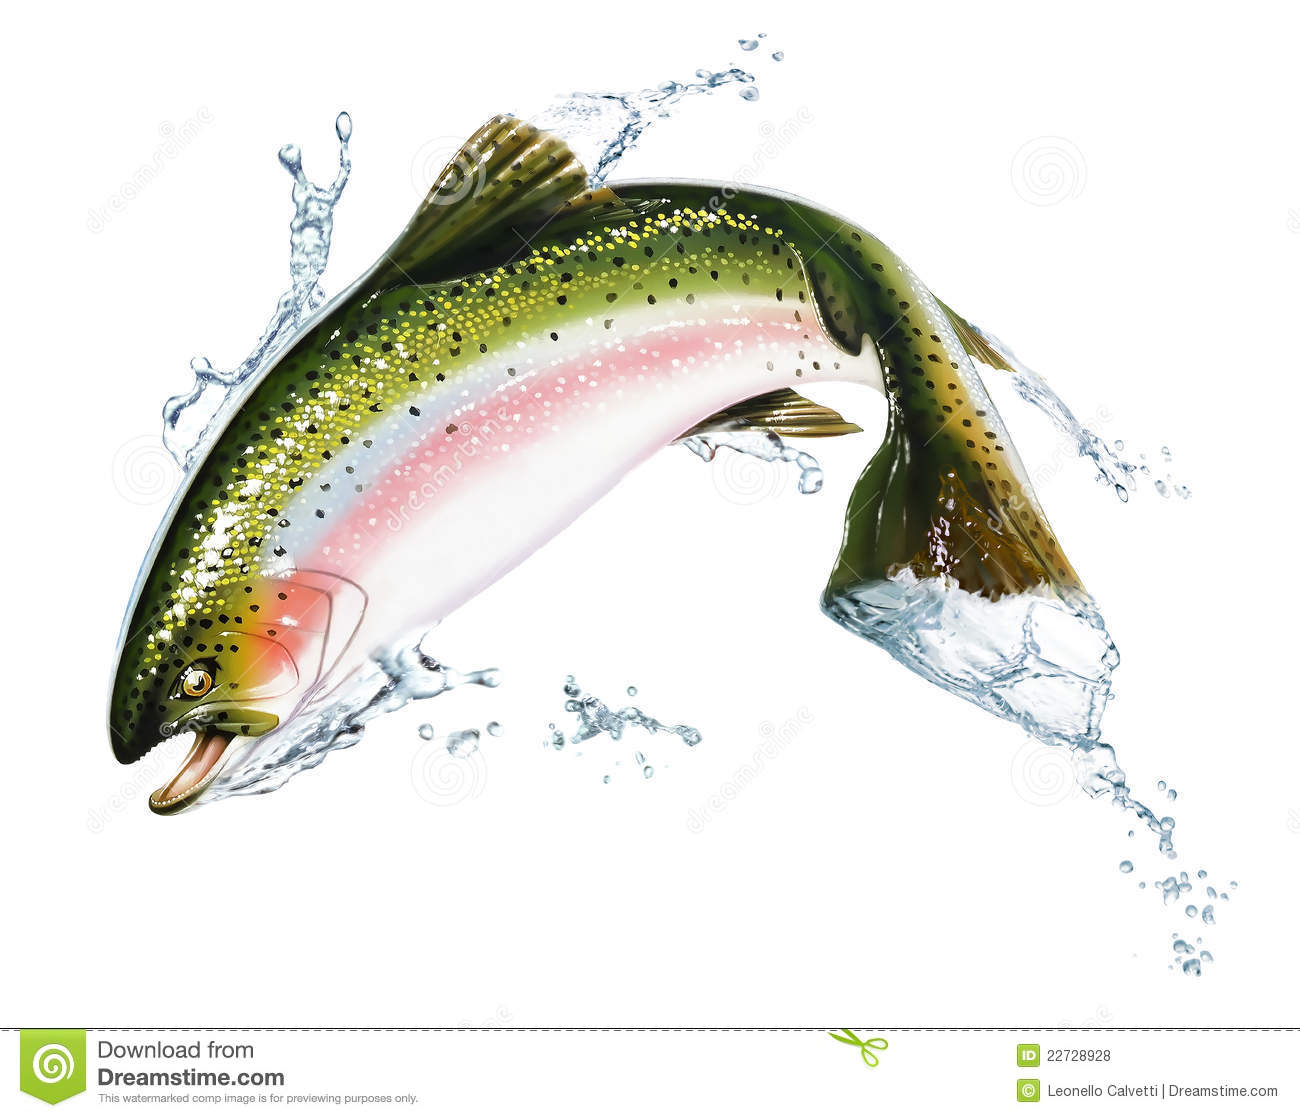 Fish jumping out of the water with some splashes royalty for Dream about fish out of water